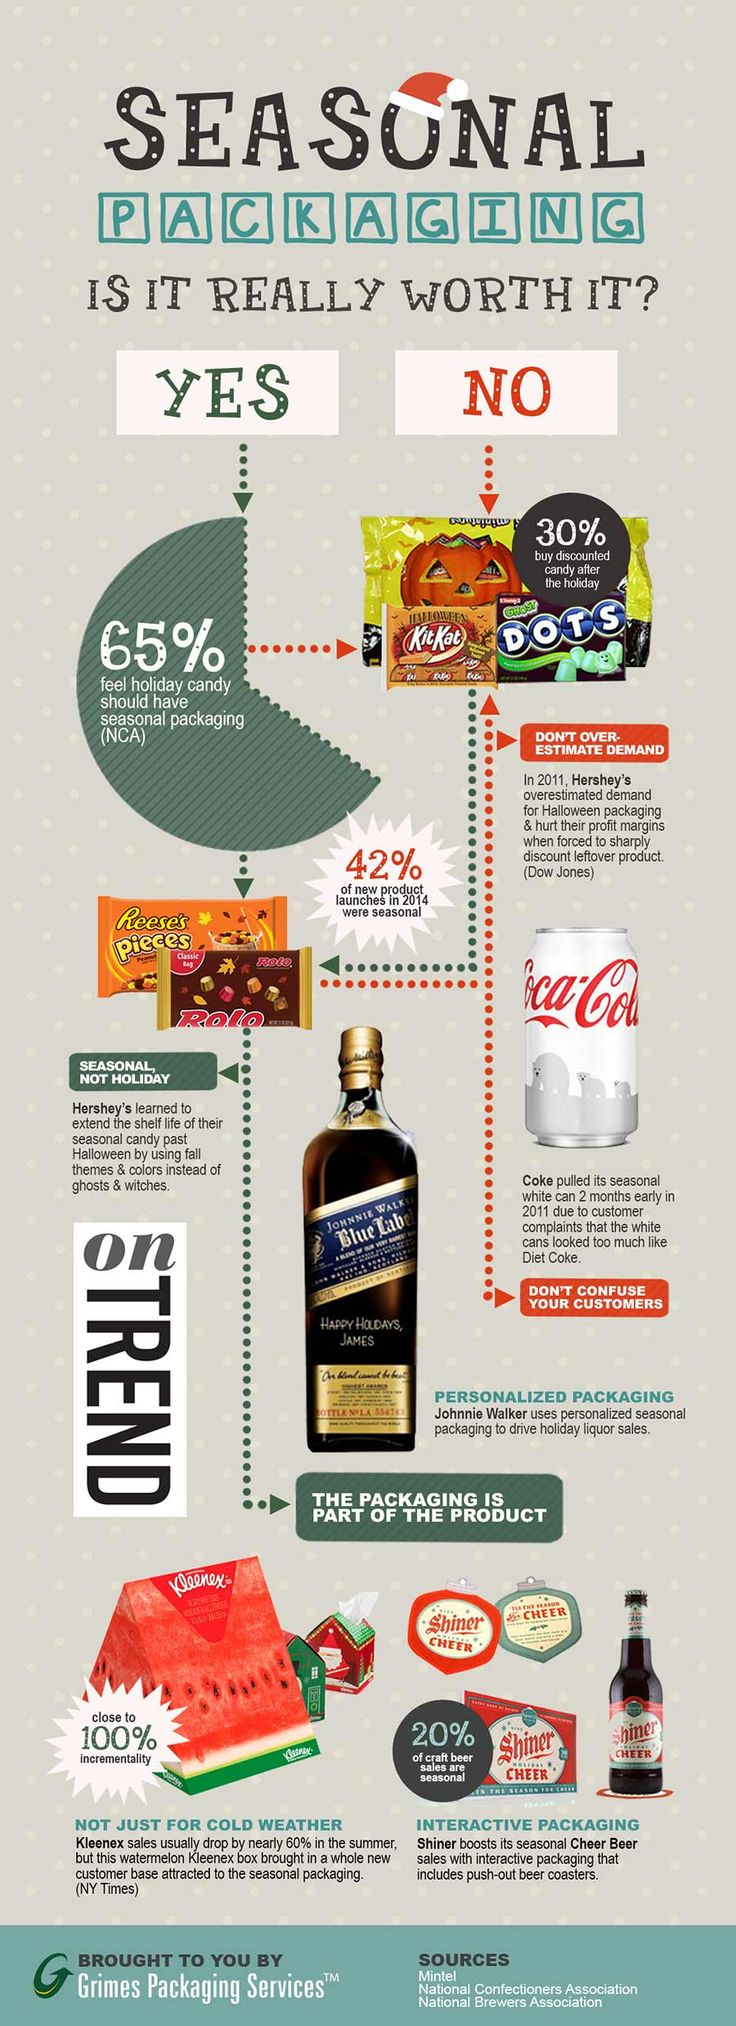 Holiday Seasonal Packaging Infographic: Statistics & Does it Work?